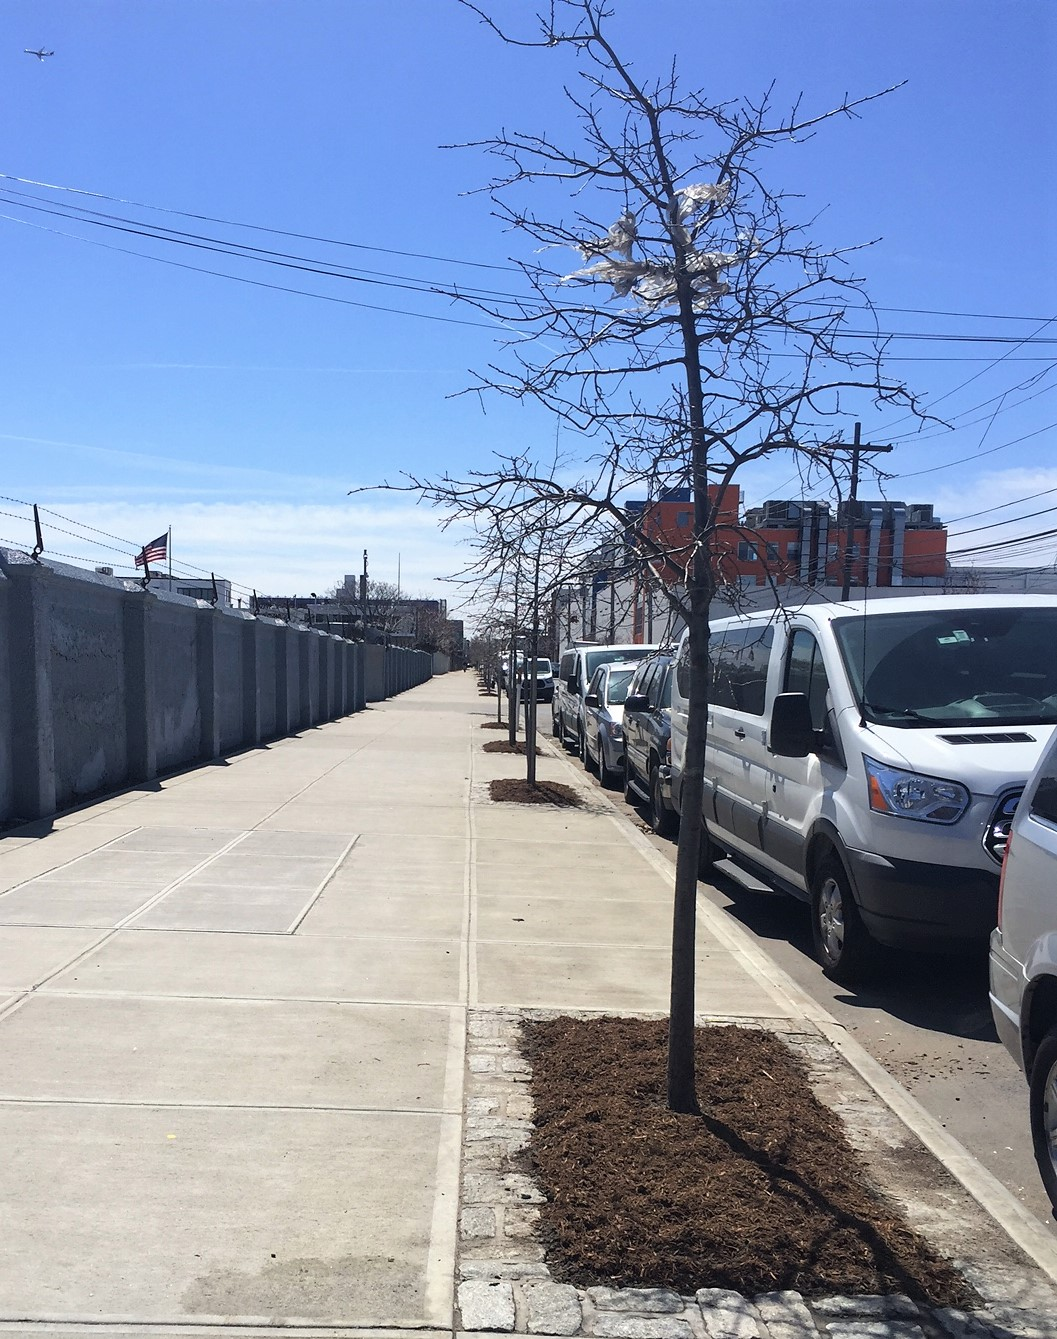 Freshly mulched tree beds lining Kingsland between Norman and Greenpoint Avenues